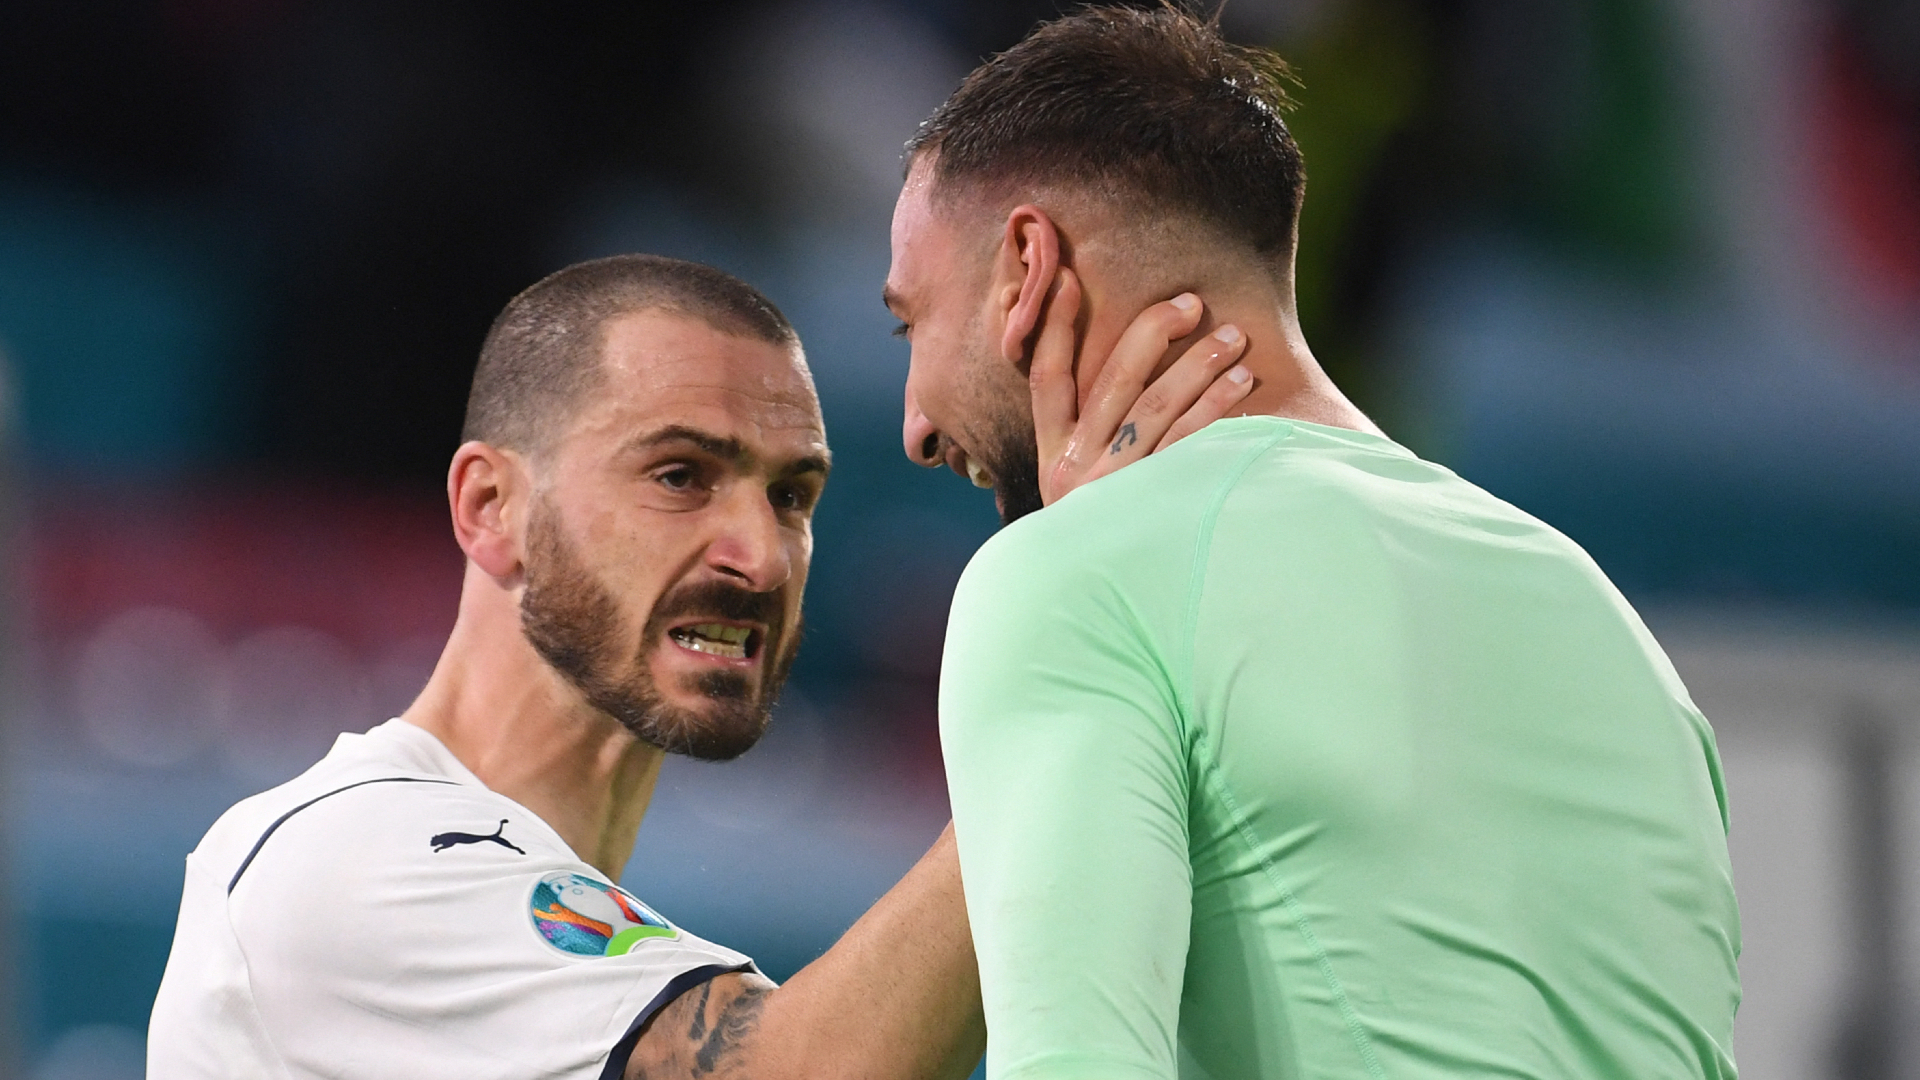 'The heart of Italians!' - Bonucci thrilled after 'dominating' Belgium en route to Euro 2020 semi-final